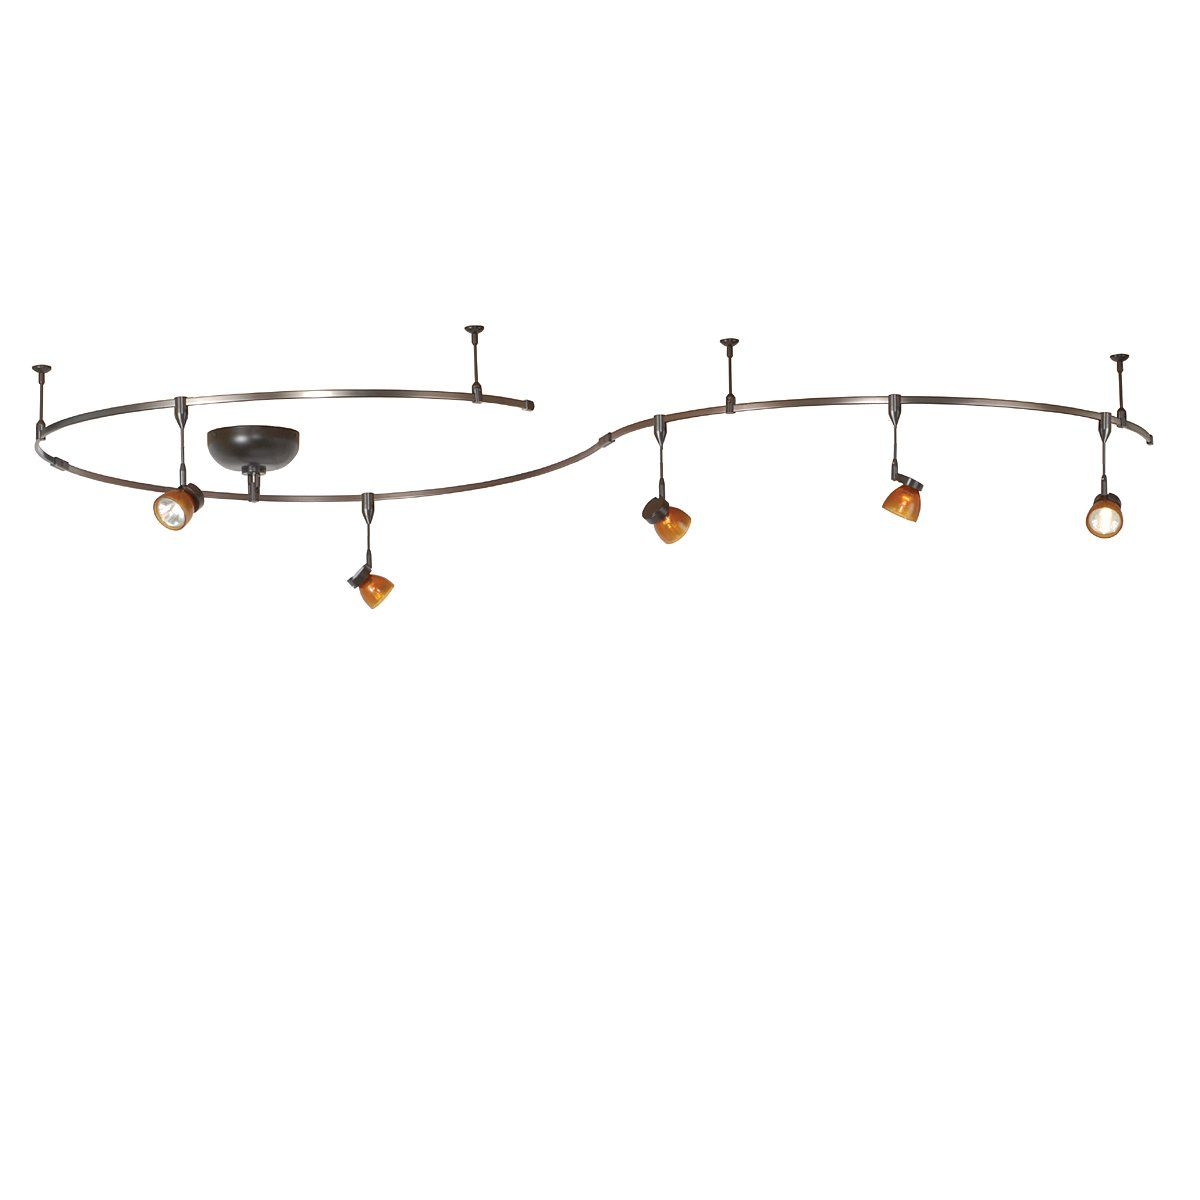 Wac Lighting Lm K8111 As Db 5 Light Monorail Kit Amber